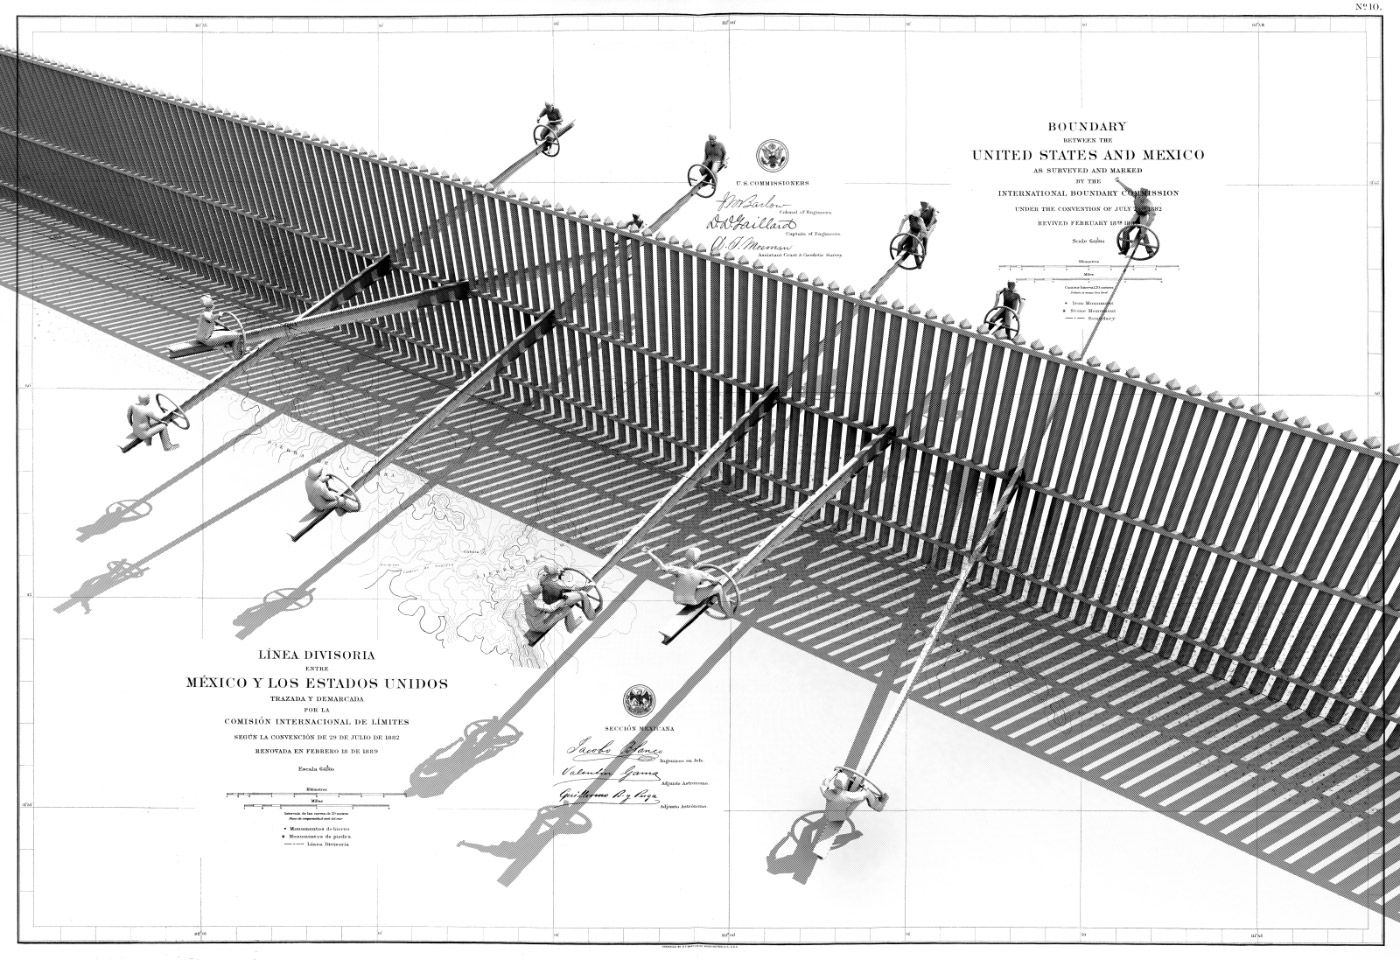 How Architects Can Engage Critically With The Idea Of The Border Wall